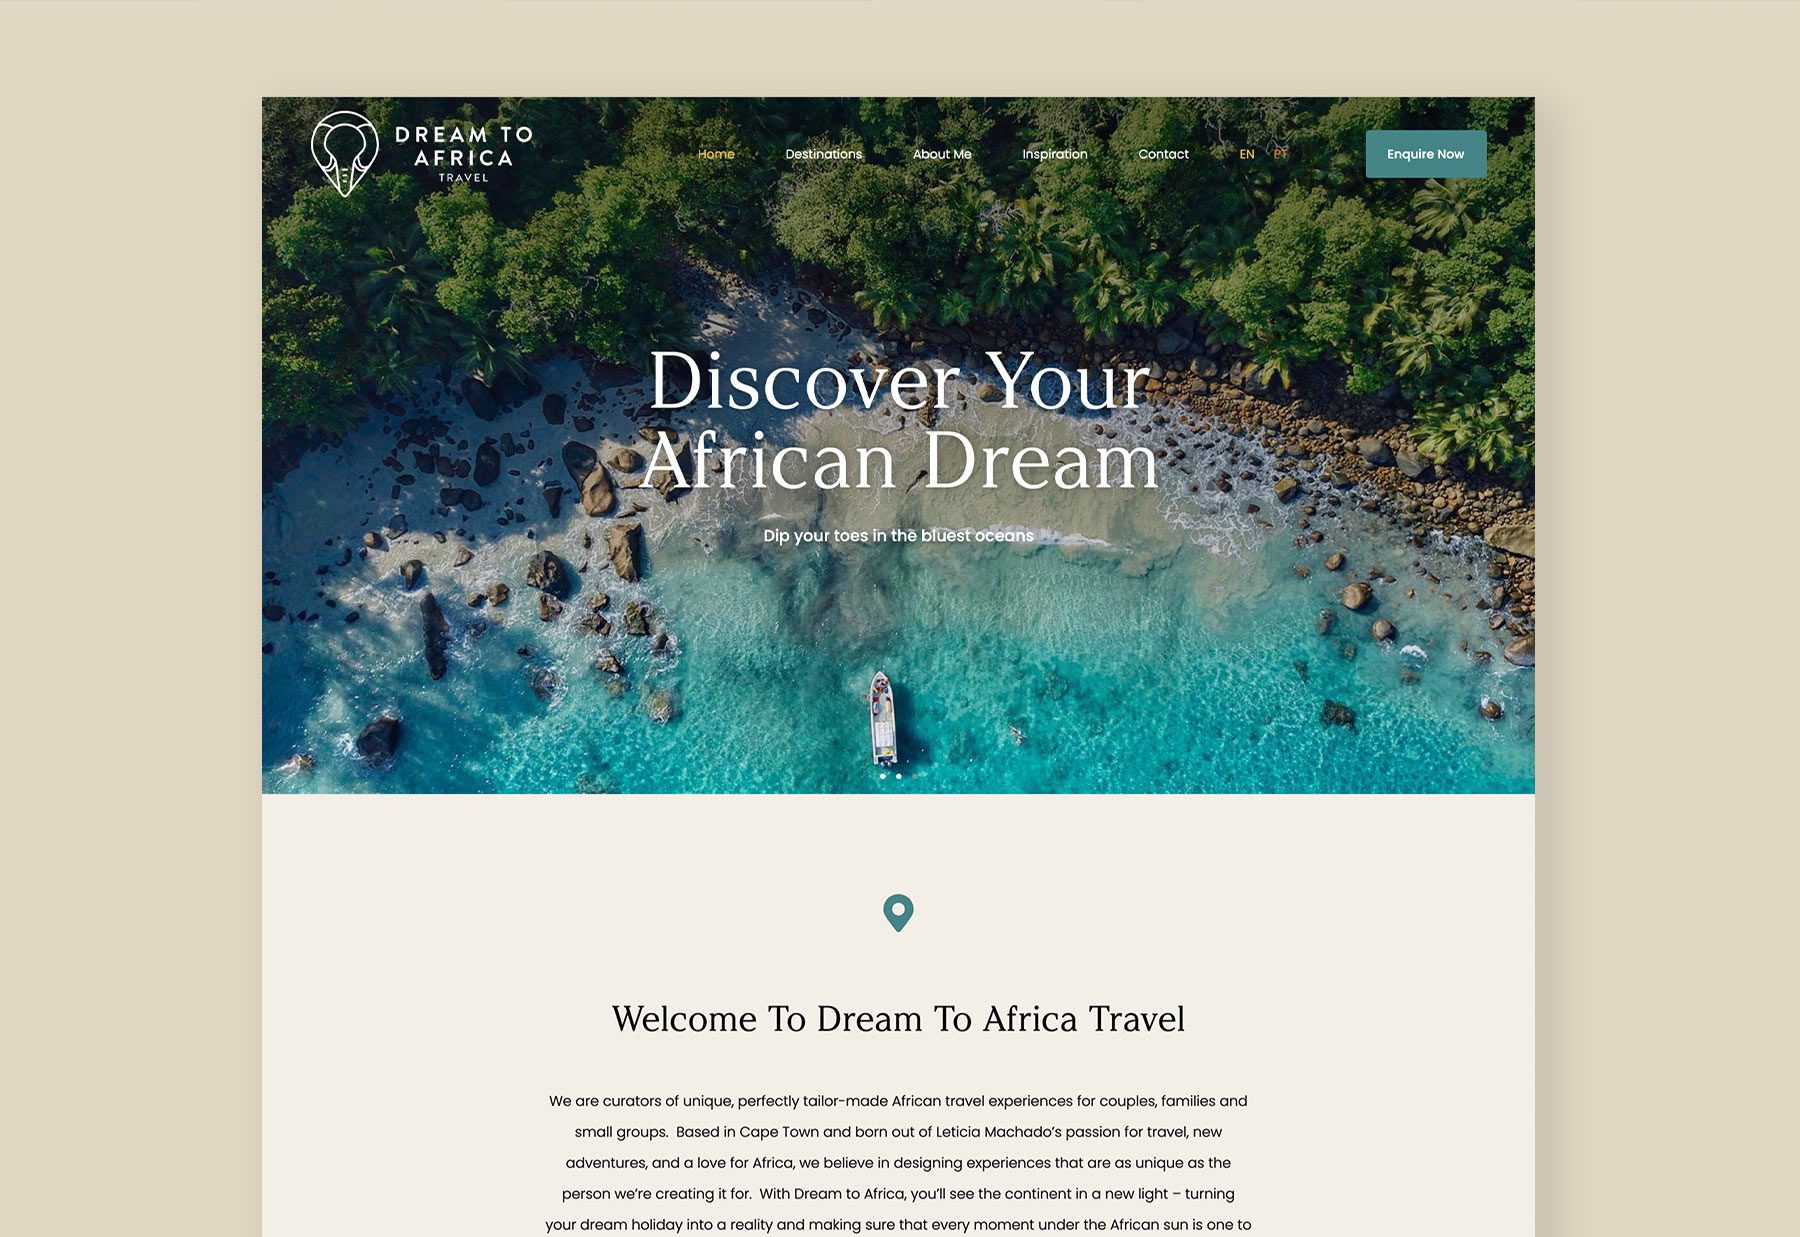 Beautiful WordPress website mockup for African travel company, Dream to Africa